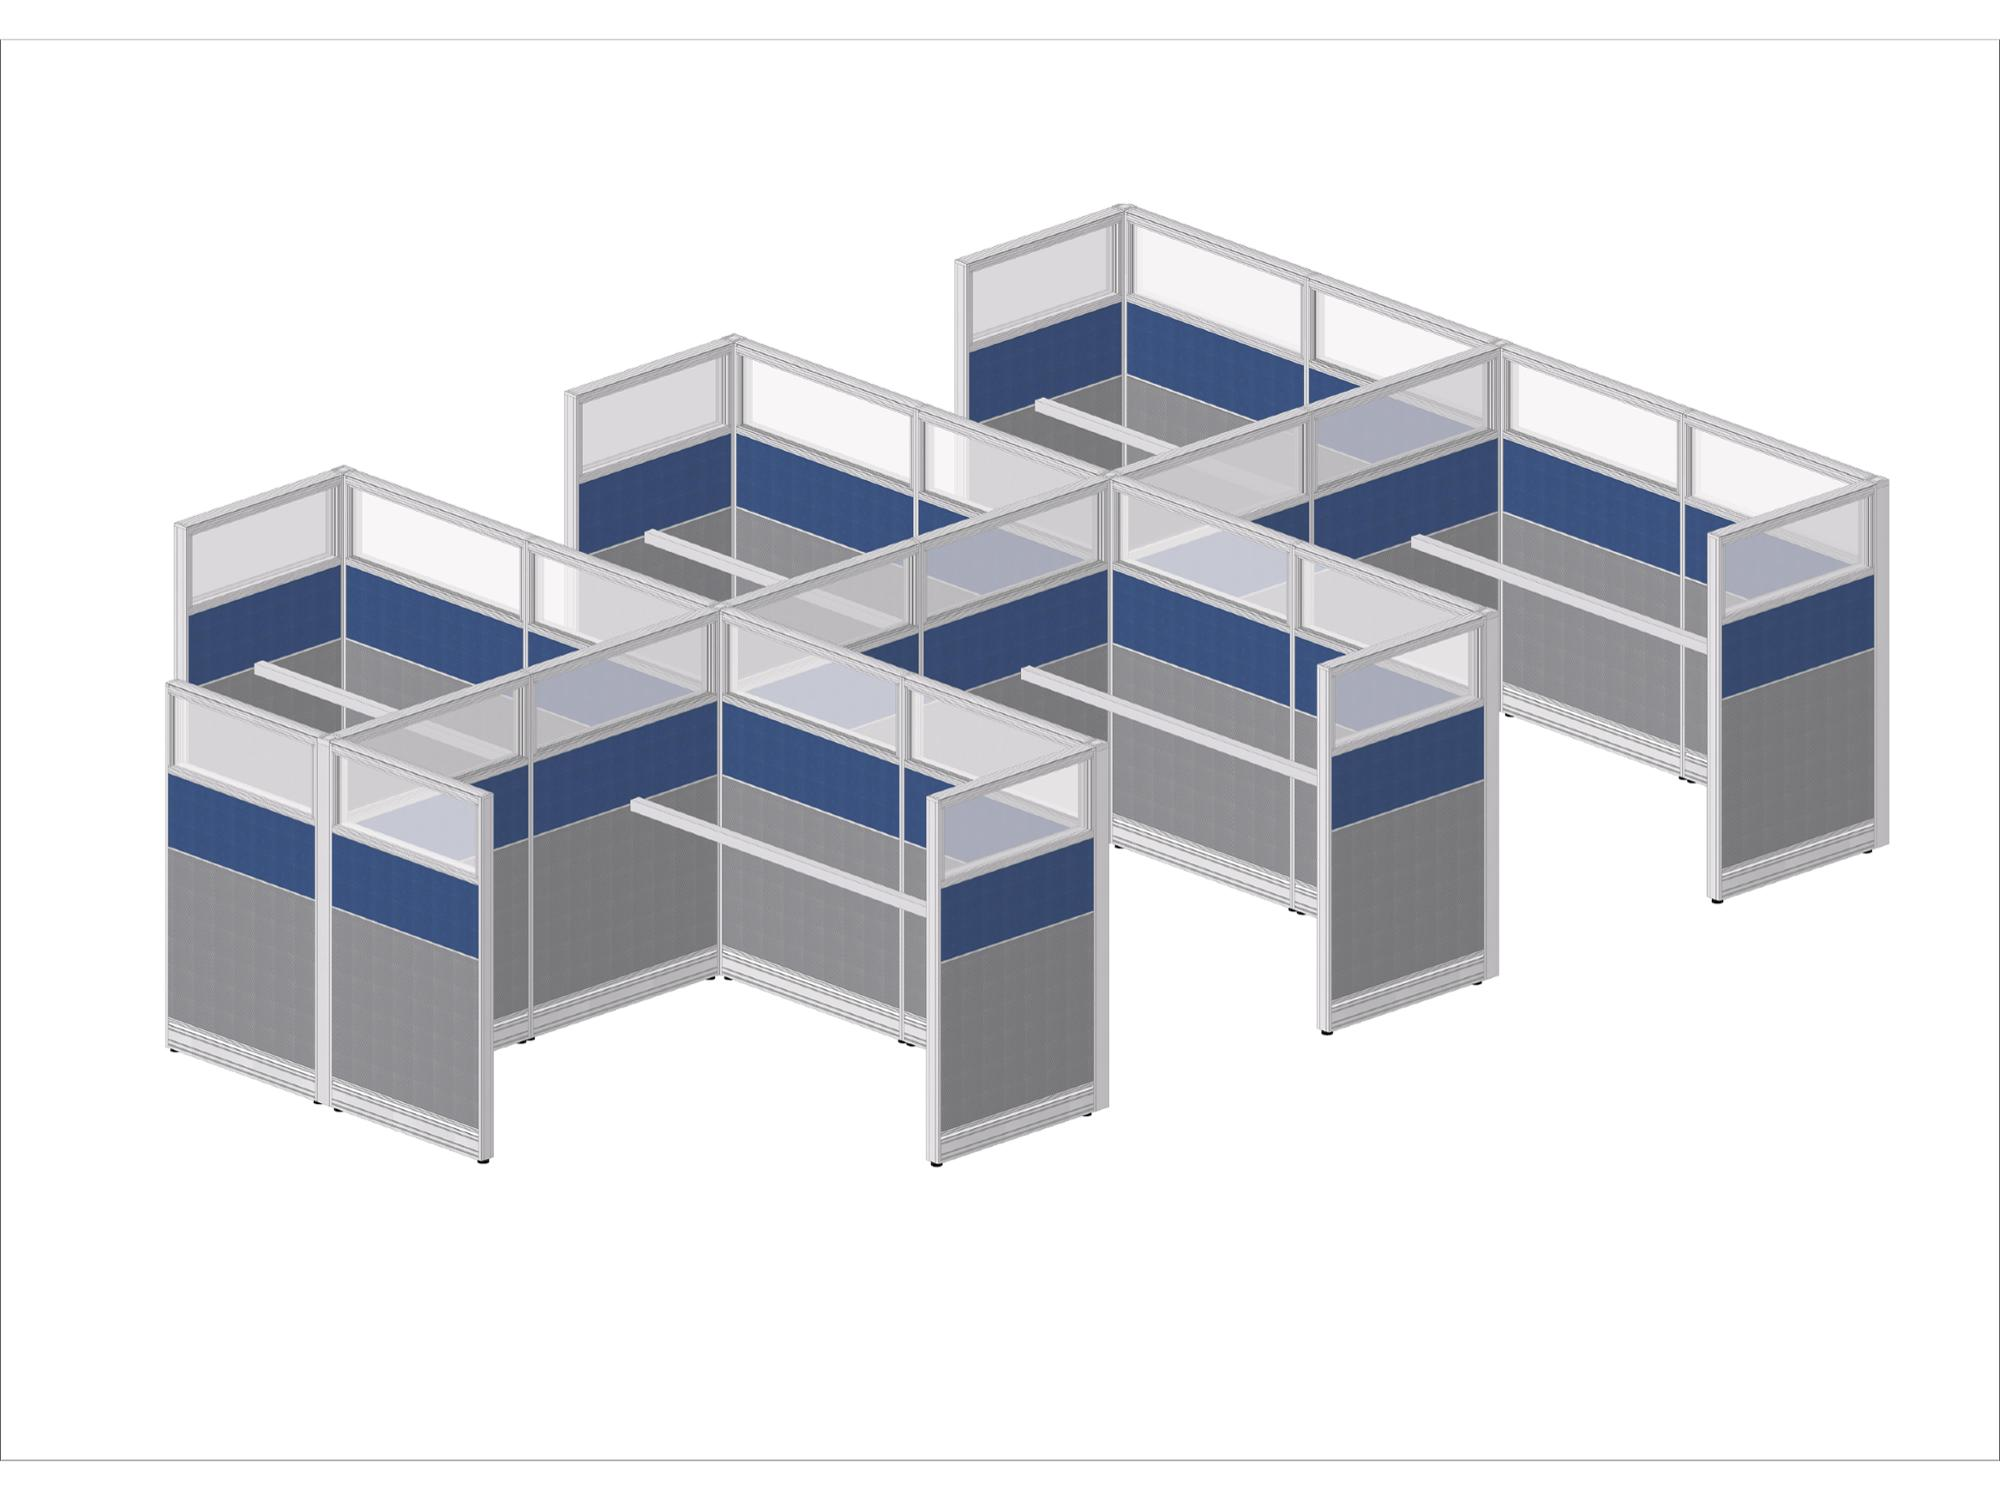 Directly factory price modern office furniture aluminum frame glass partition 6 person cluster workstation